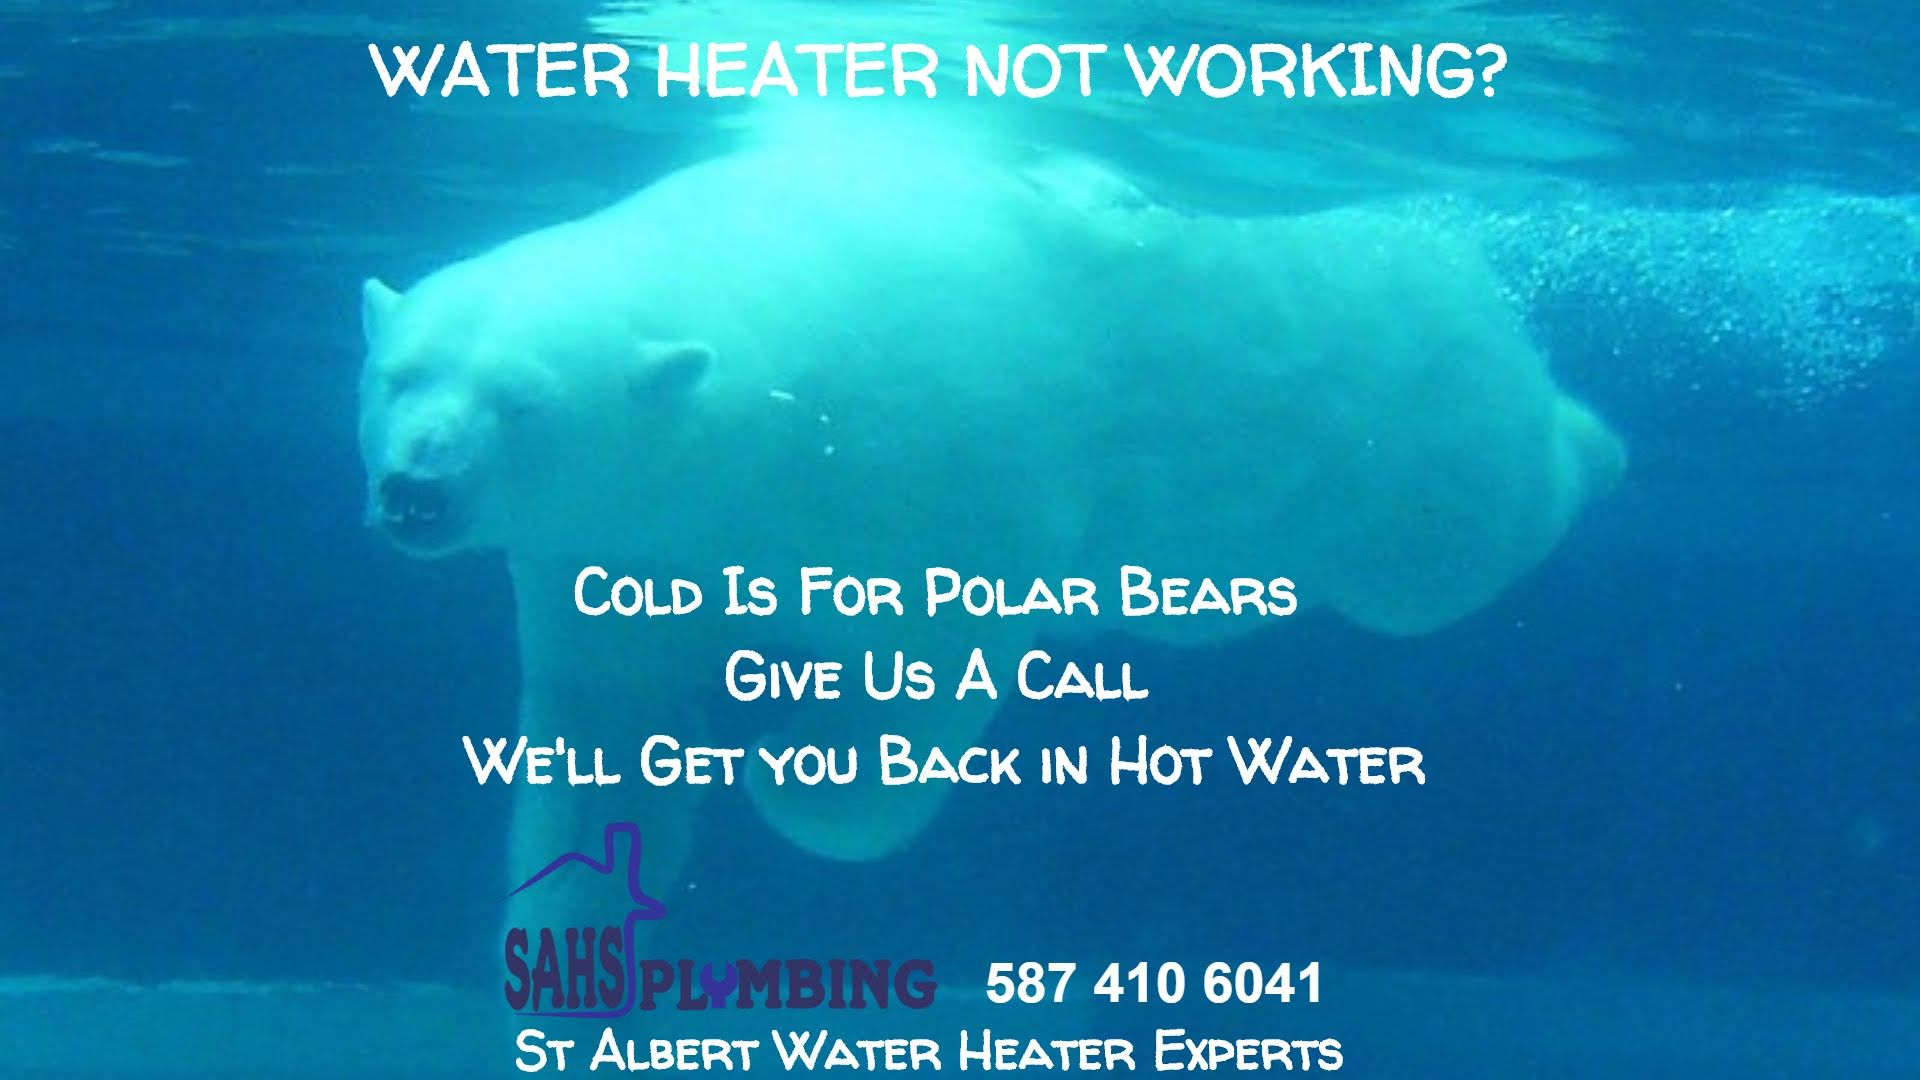 St albert water heater repair sahs plumbing ud hot water fix your